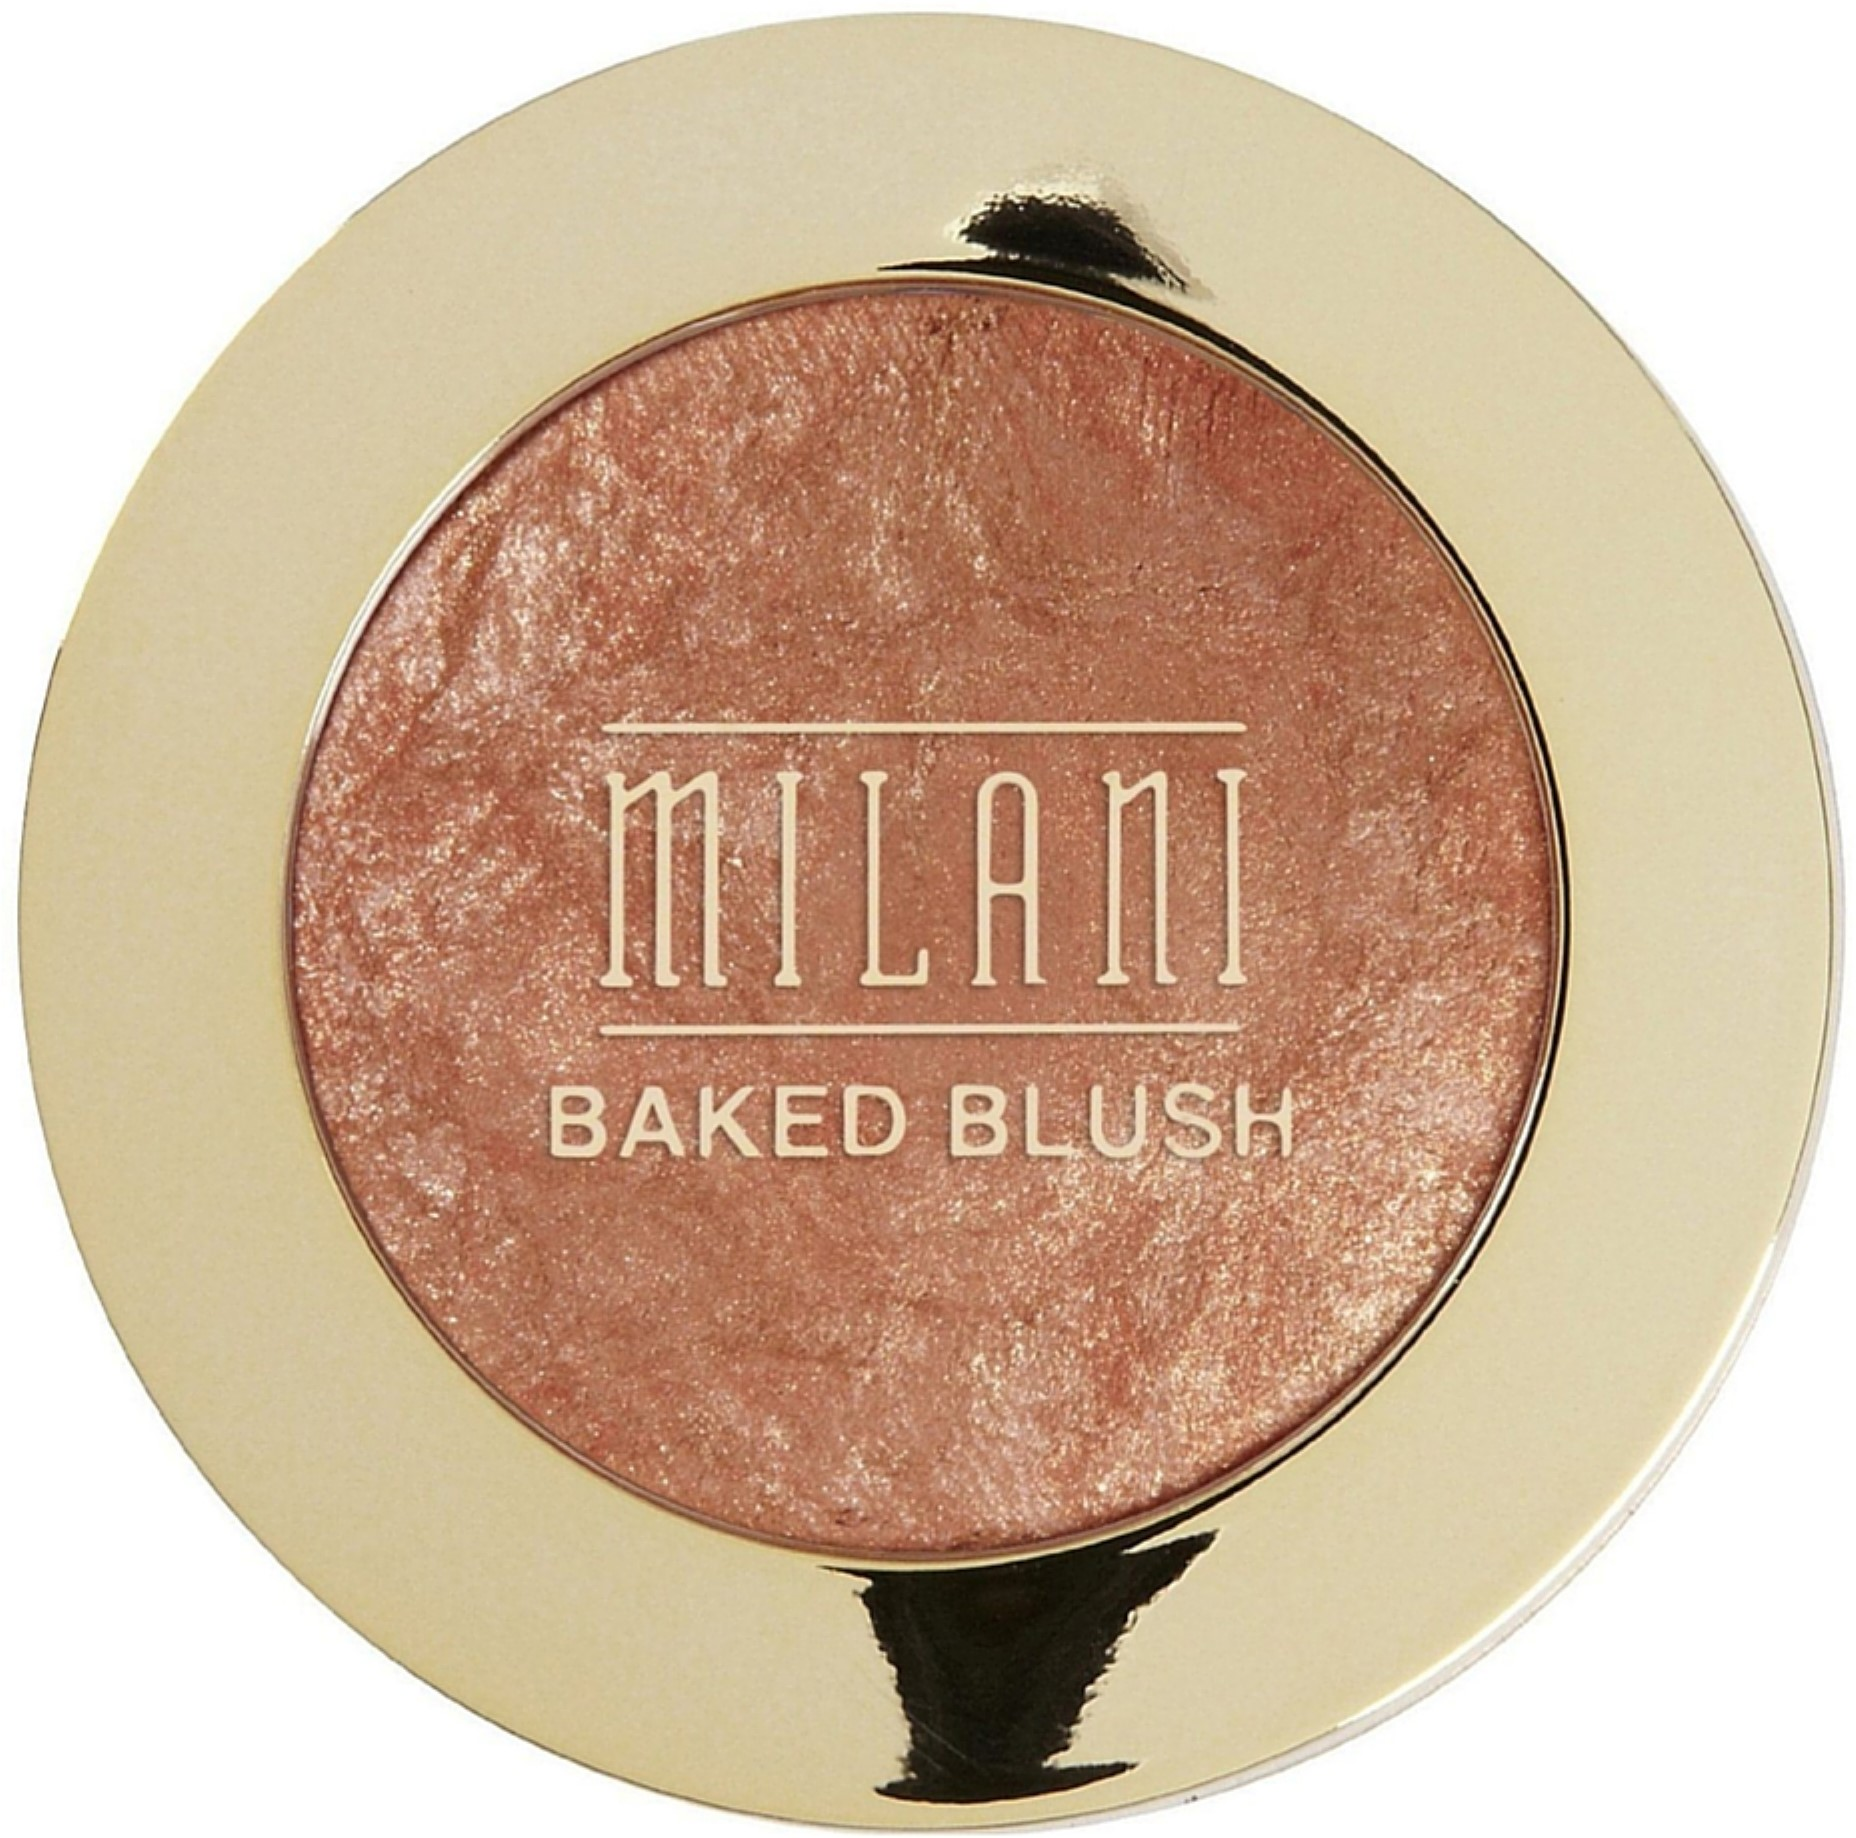 Milani Baked Powder Blush, Bellissimo Bronze 0.12 oz (Pack of 3)